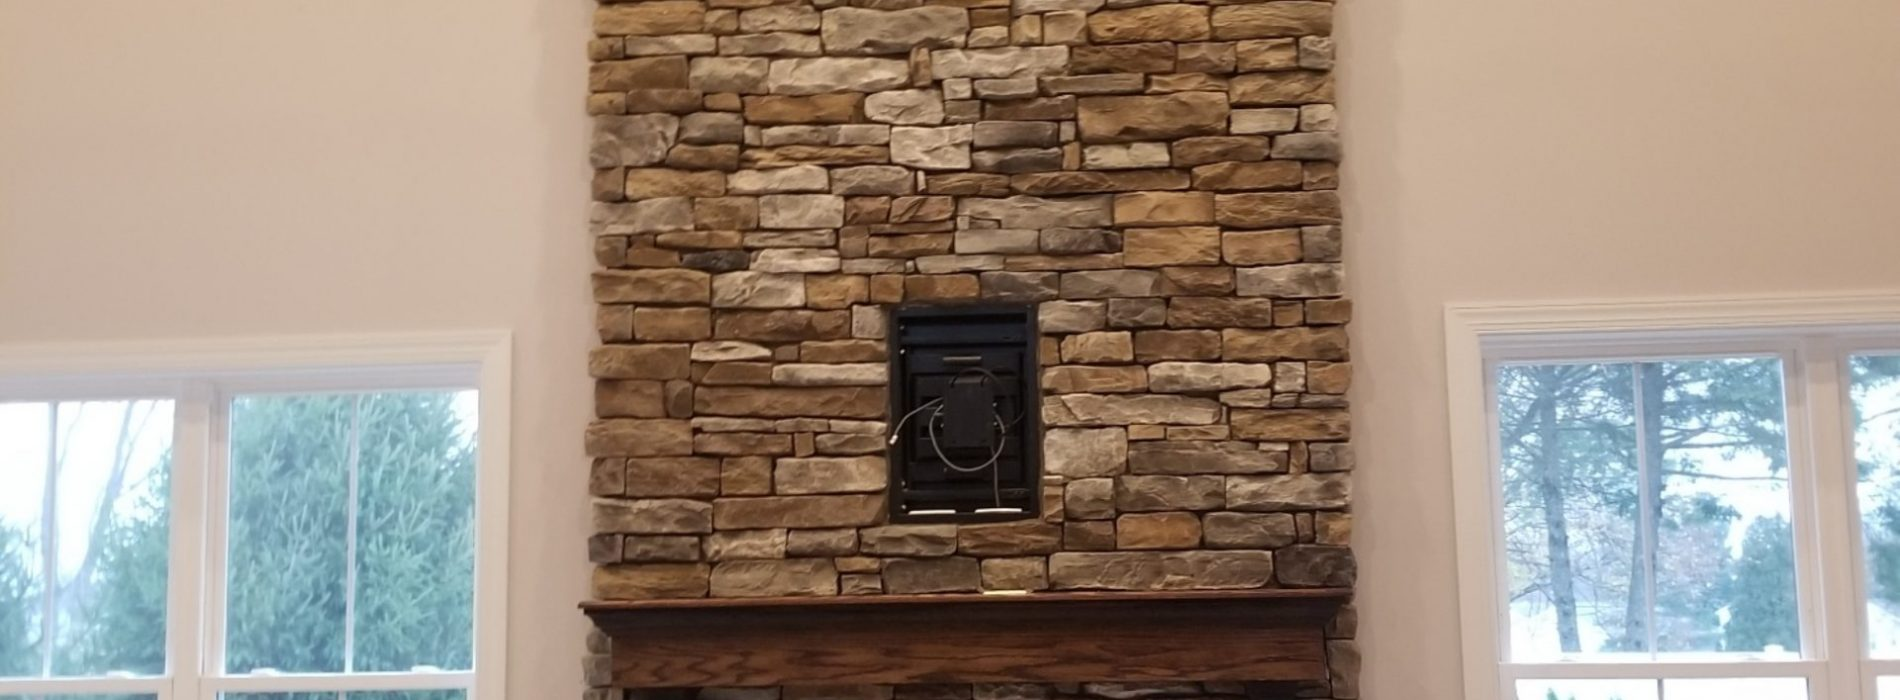 new stone work on living room fireplace